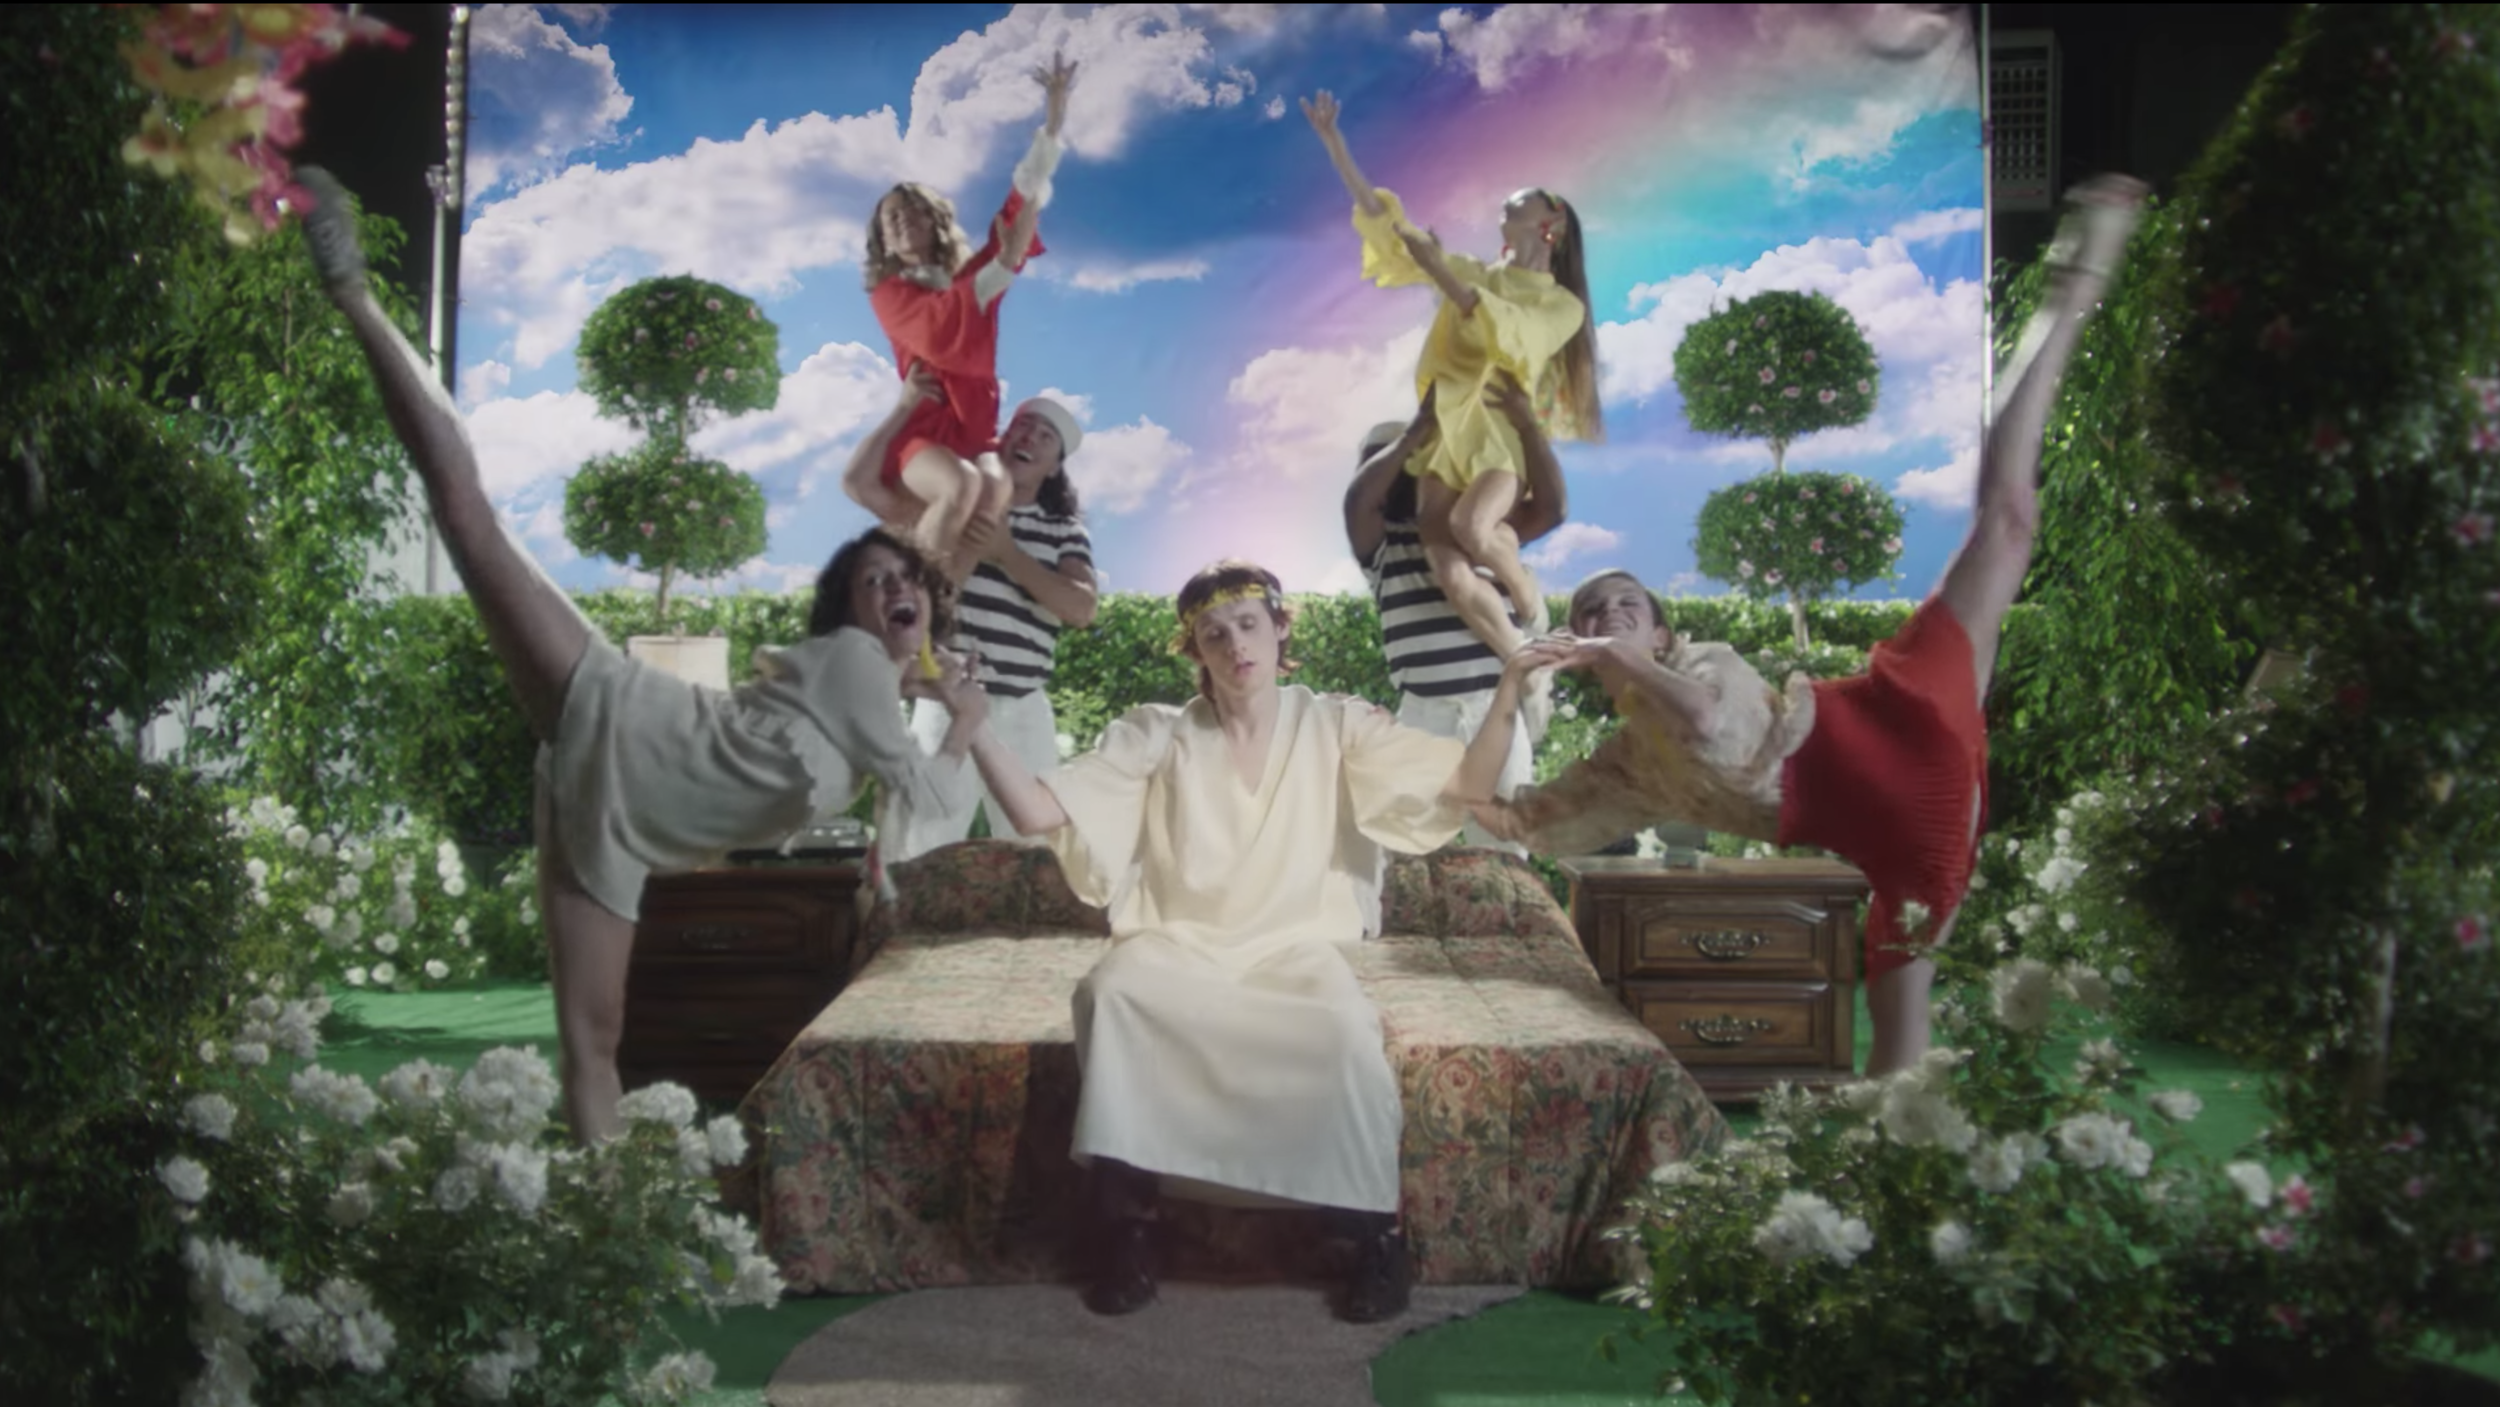 AVALON / FOXYGEN - Directed by Cameron Dutra & Alissa Torvinen